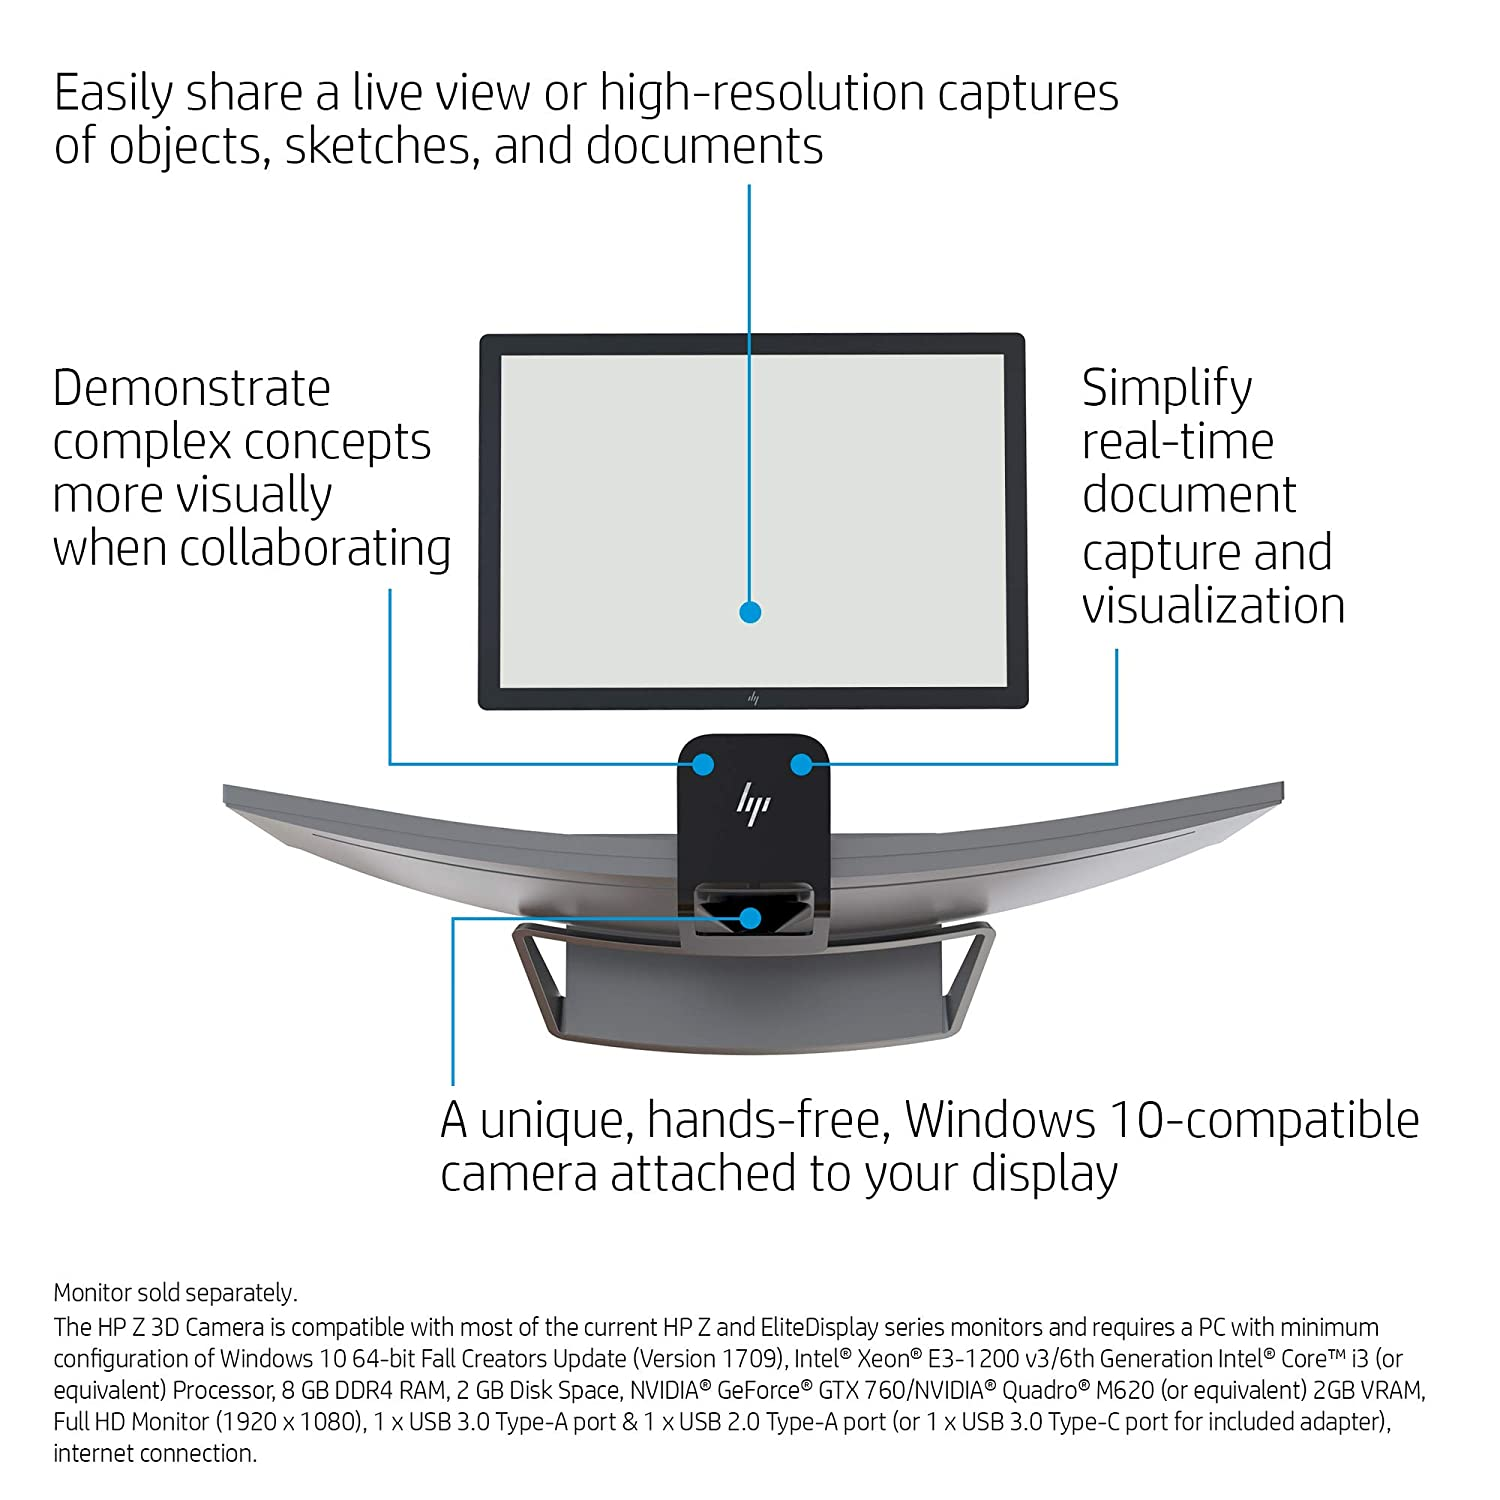 HP Z 3D Camera with SLAM Fusion Scanning, Compatible with Most Current HP Z  and EliteDisplay Series Monitors and Windows 10 PCs